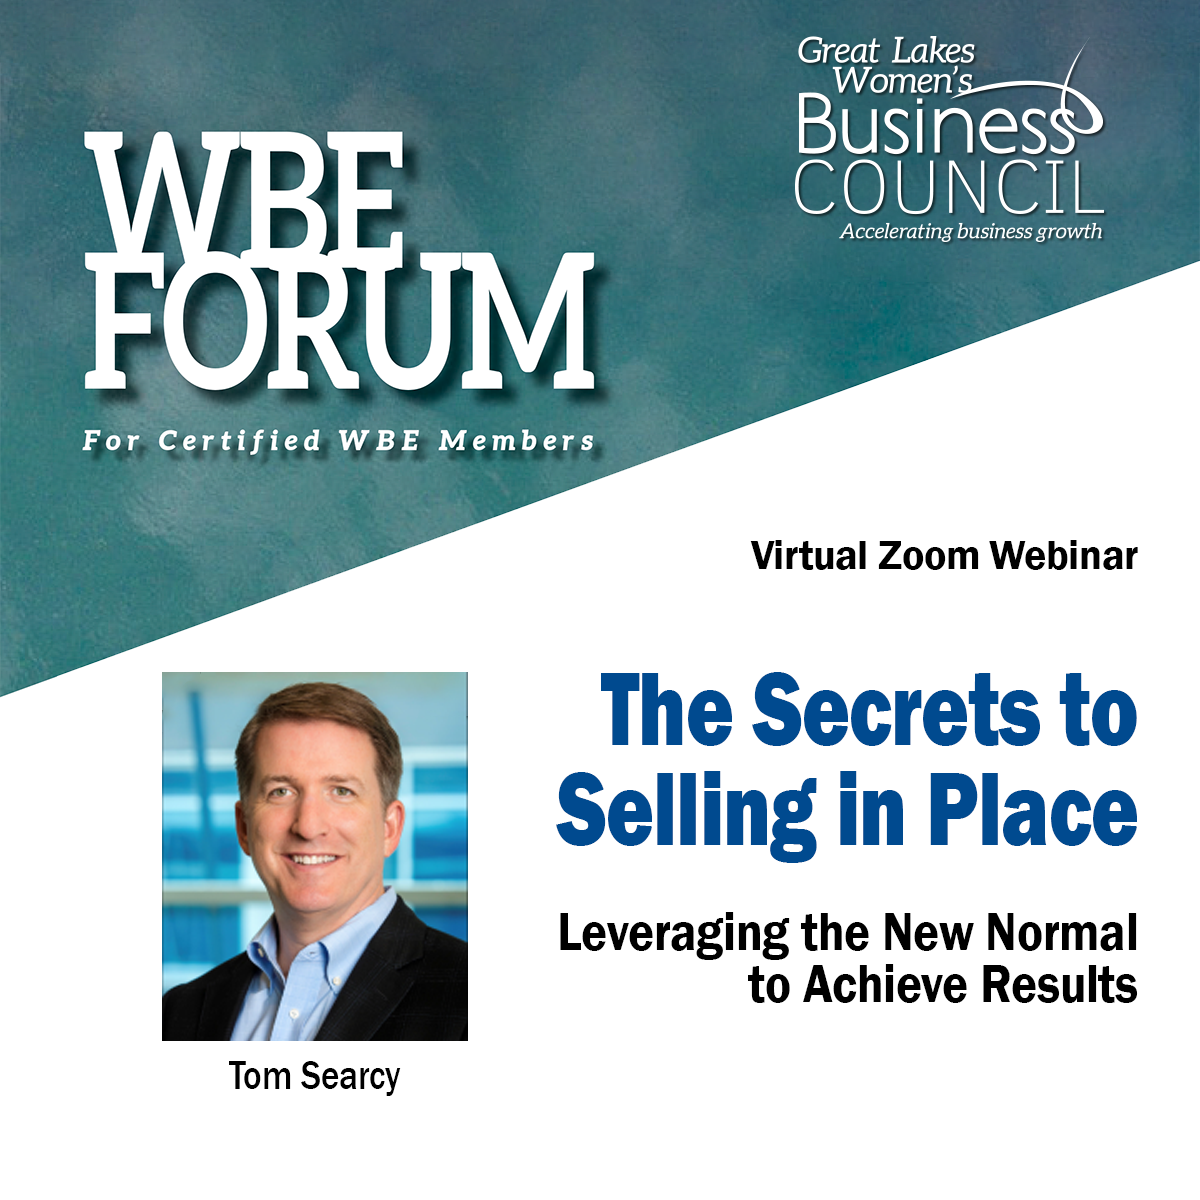 WBE Forum - The Secrets to Selling in Place